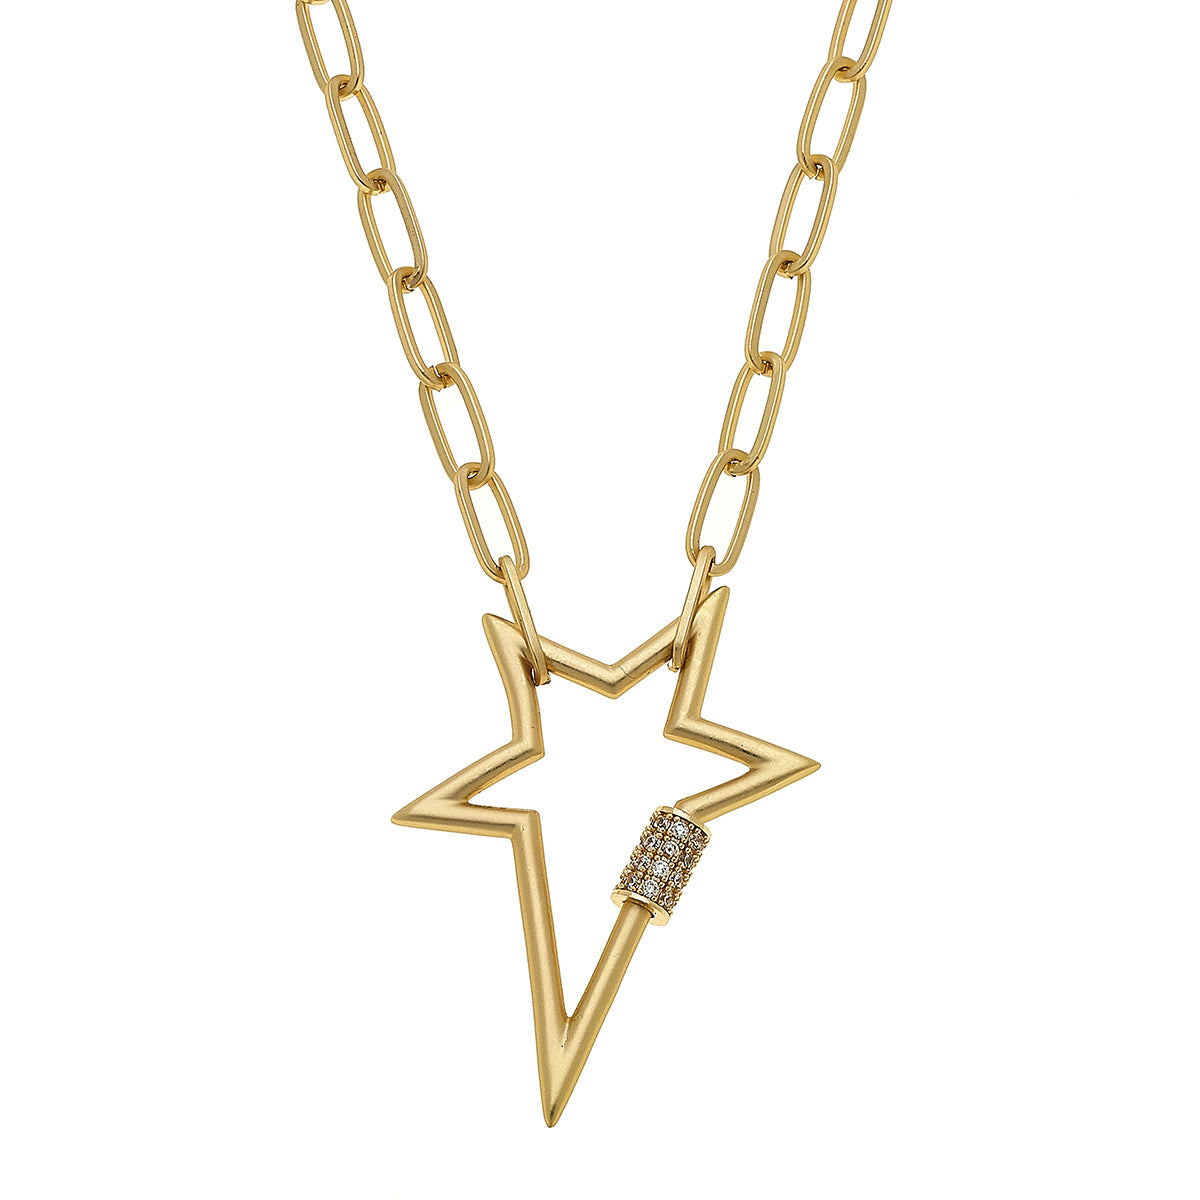 Lola Star Screw Lock Necklace In Worn Gold